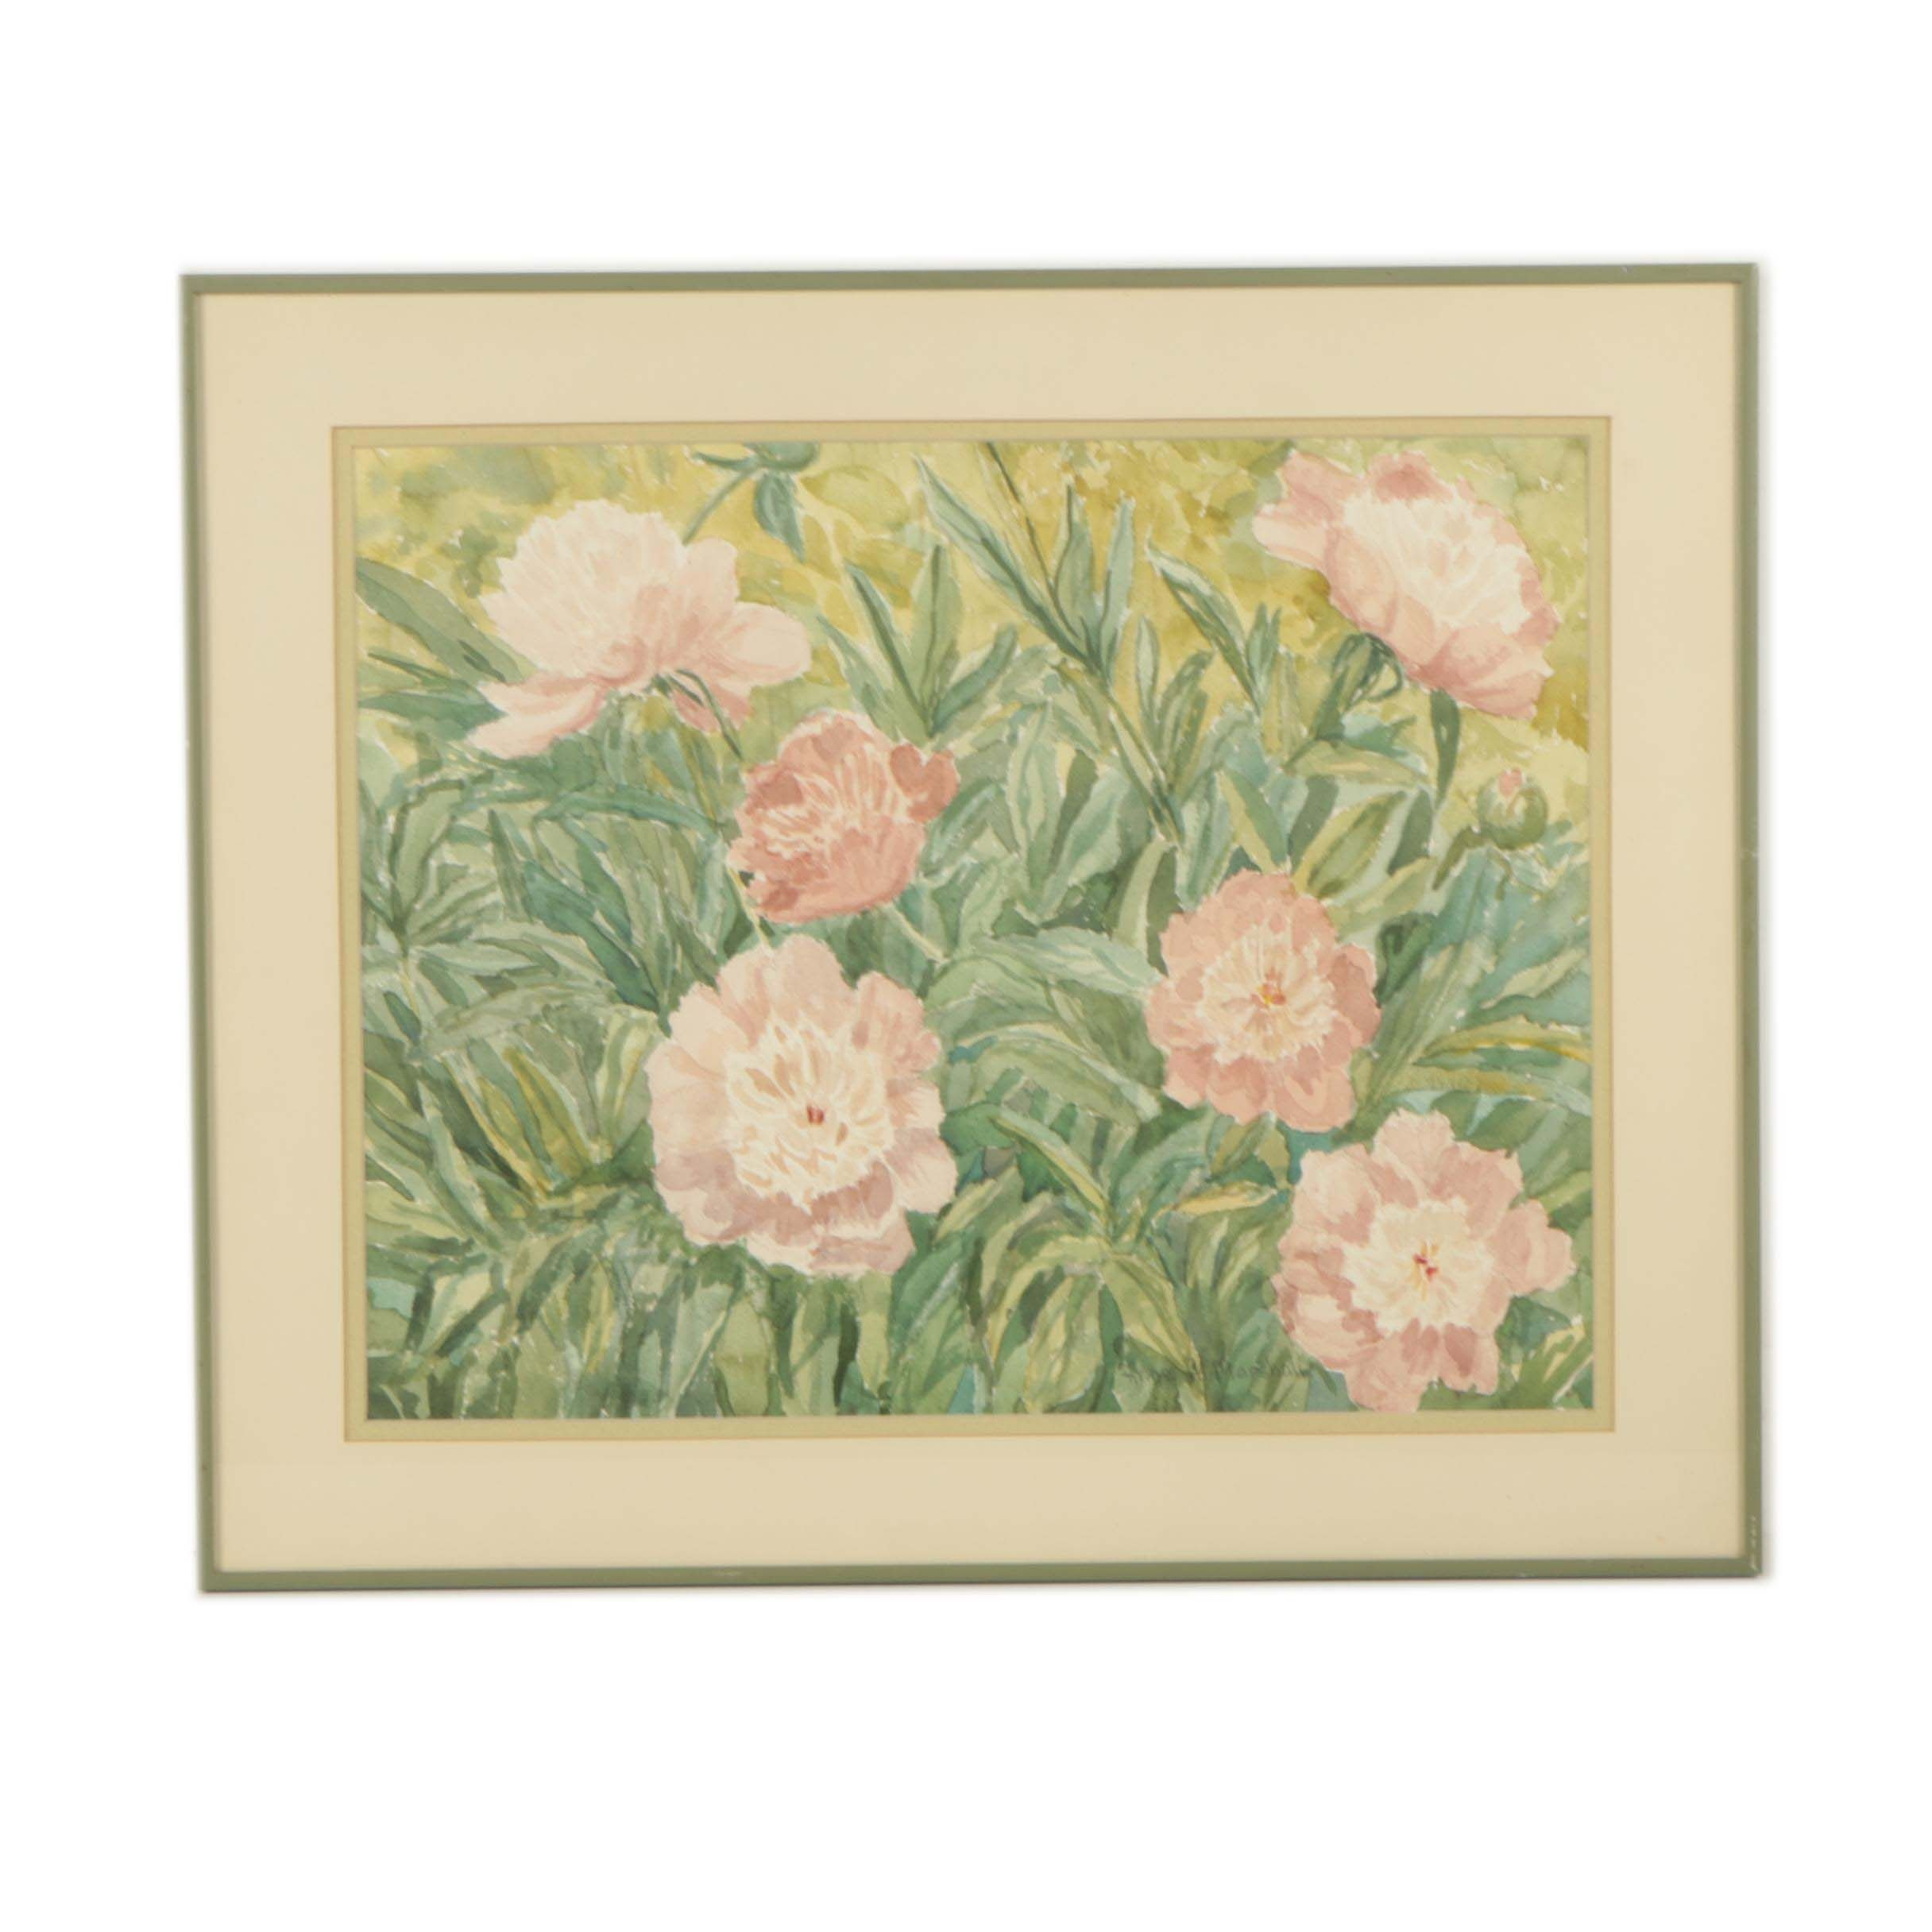 Anne A. Marshall Watercolor Painting of Flowers